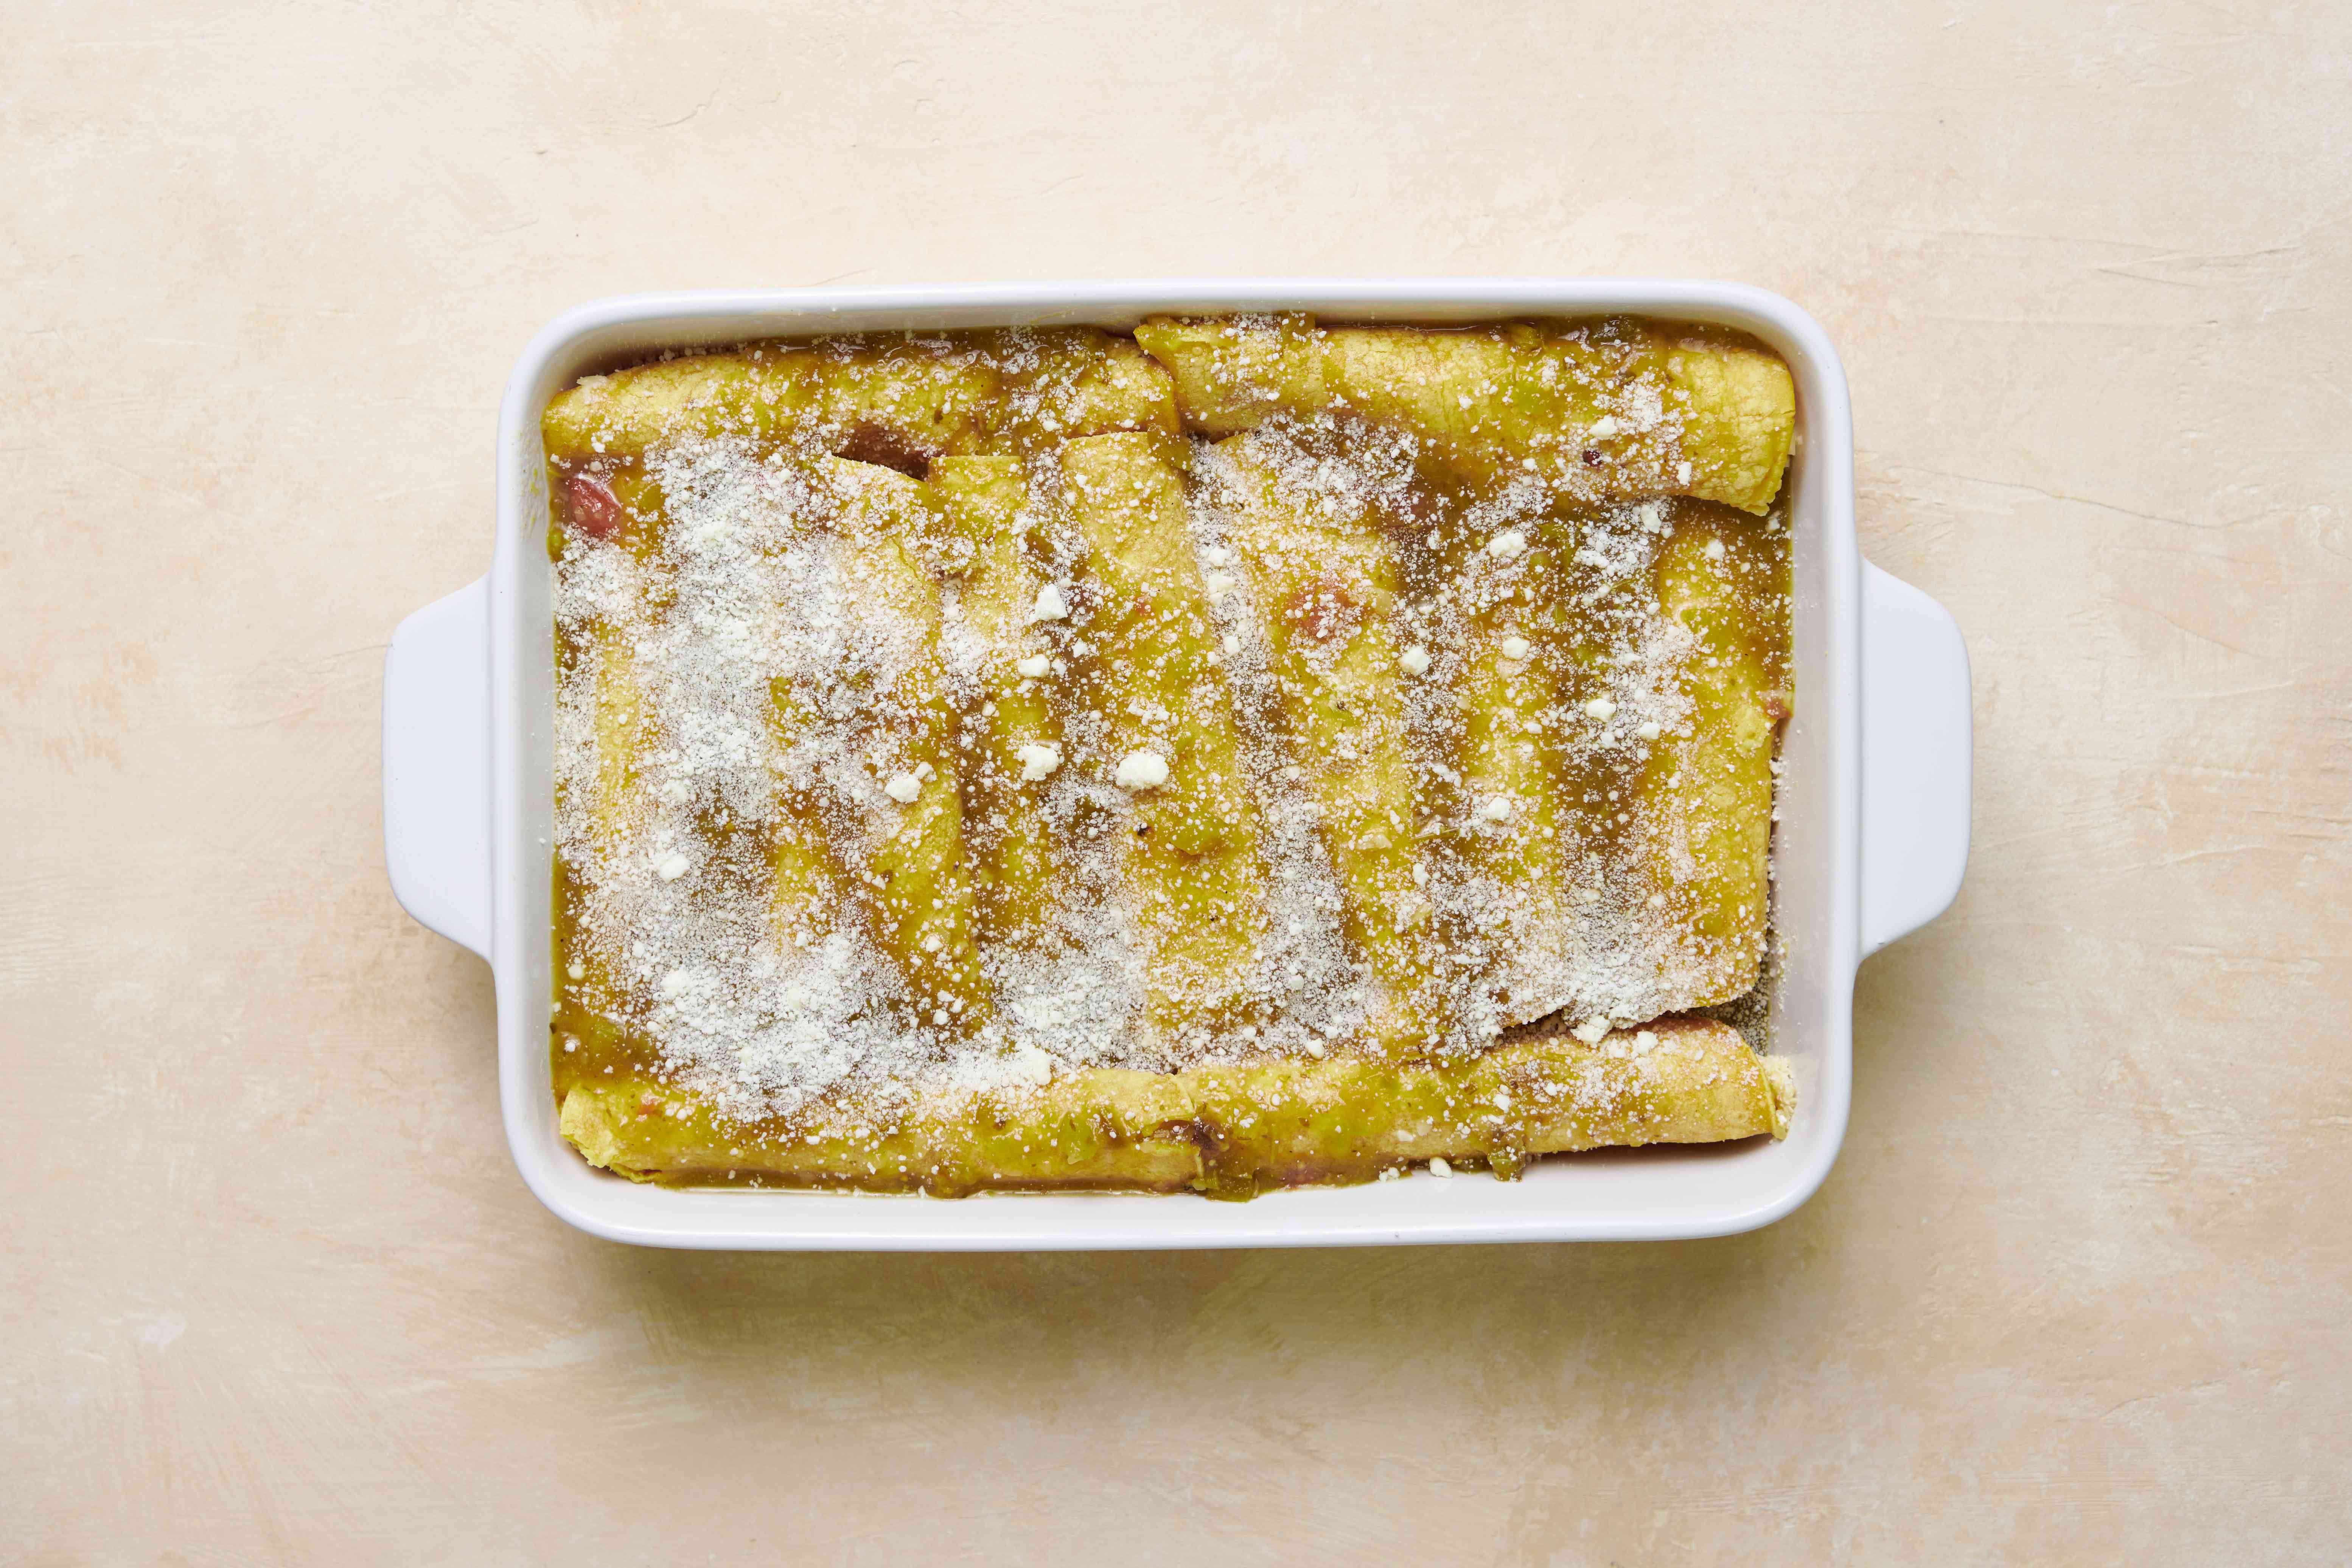 Enchiladas Verdes (Green Enchiladas) With Chicken in a baking dish with sauce and cotija on top